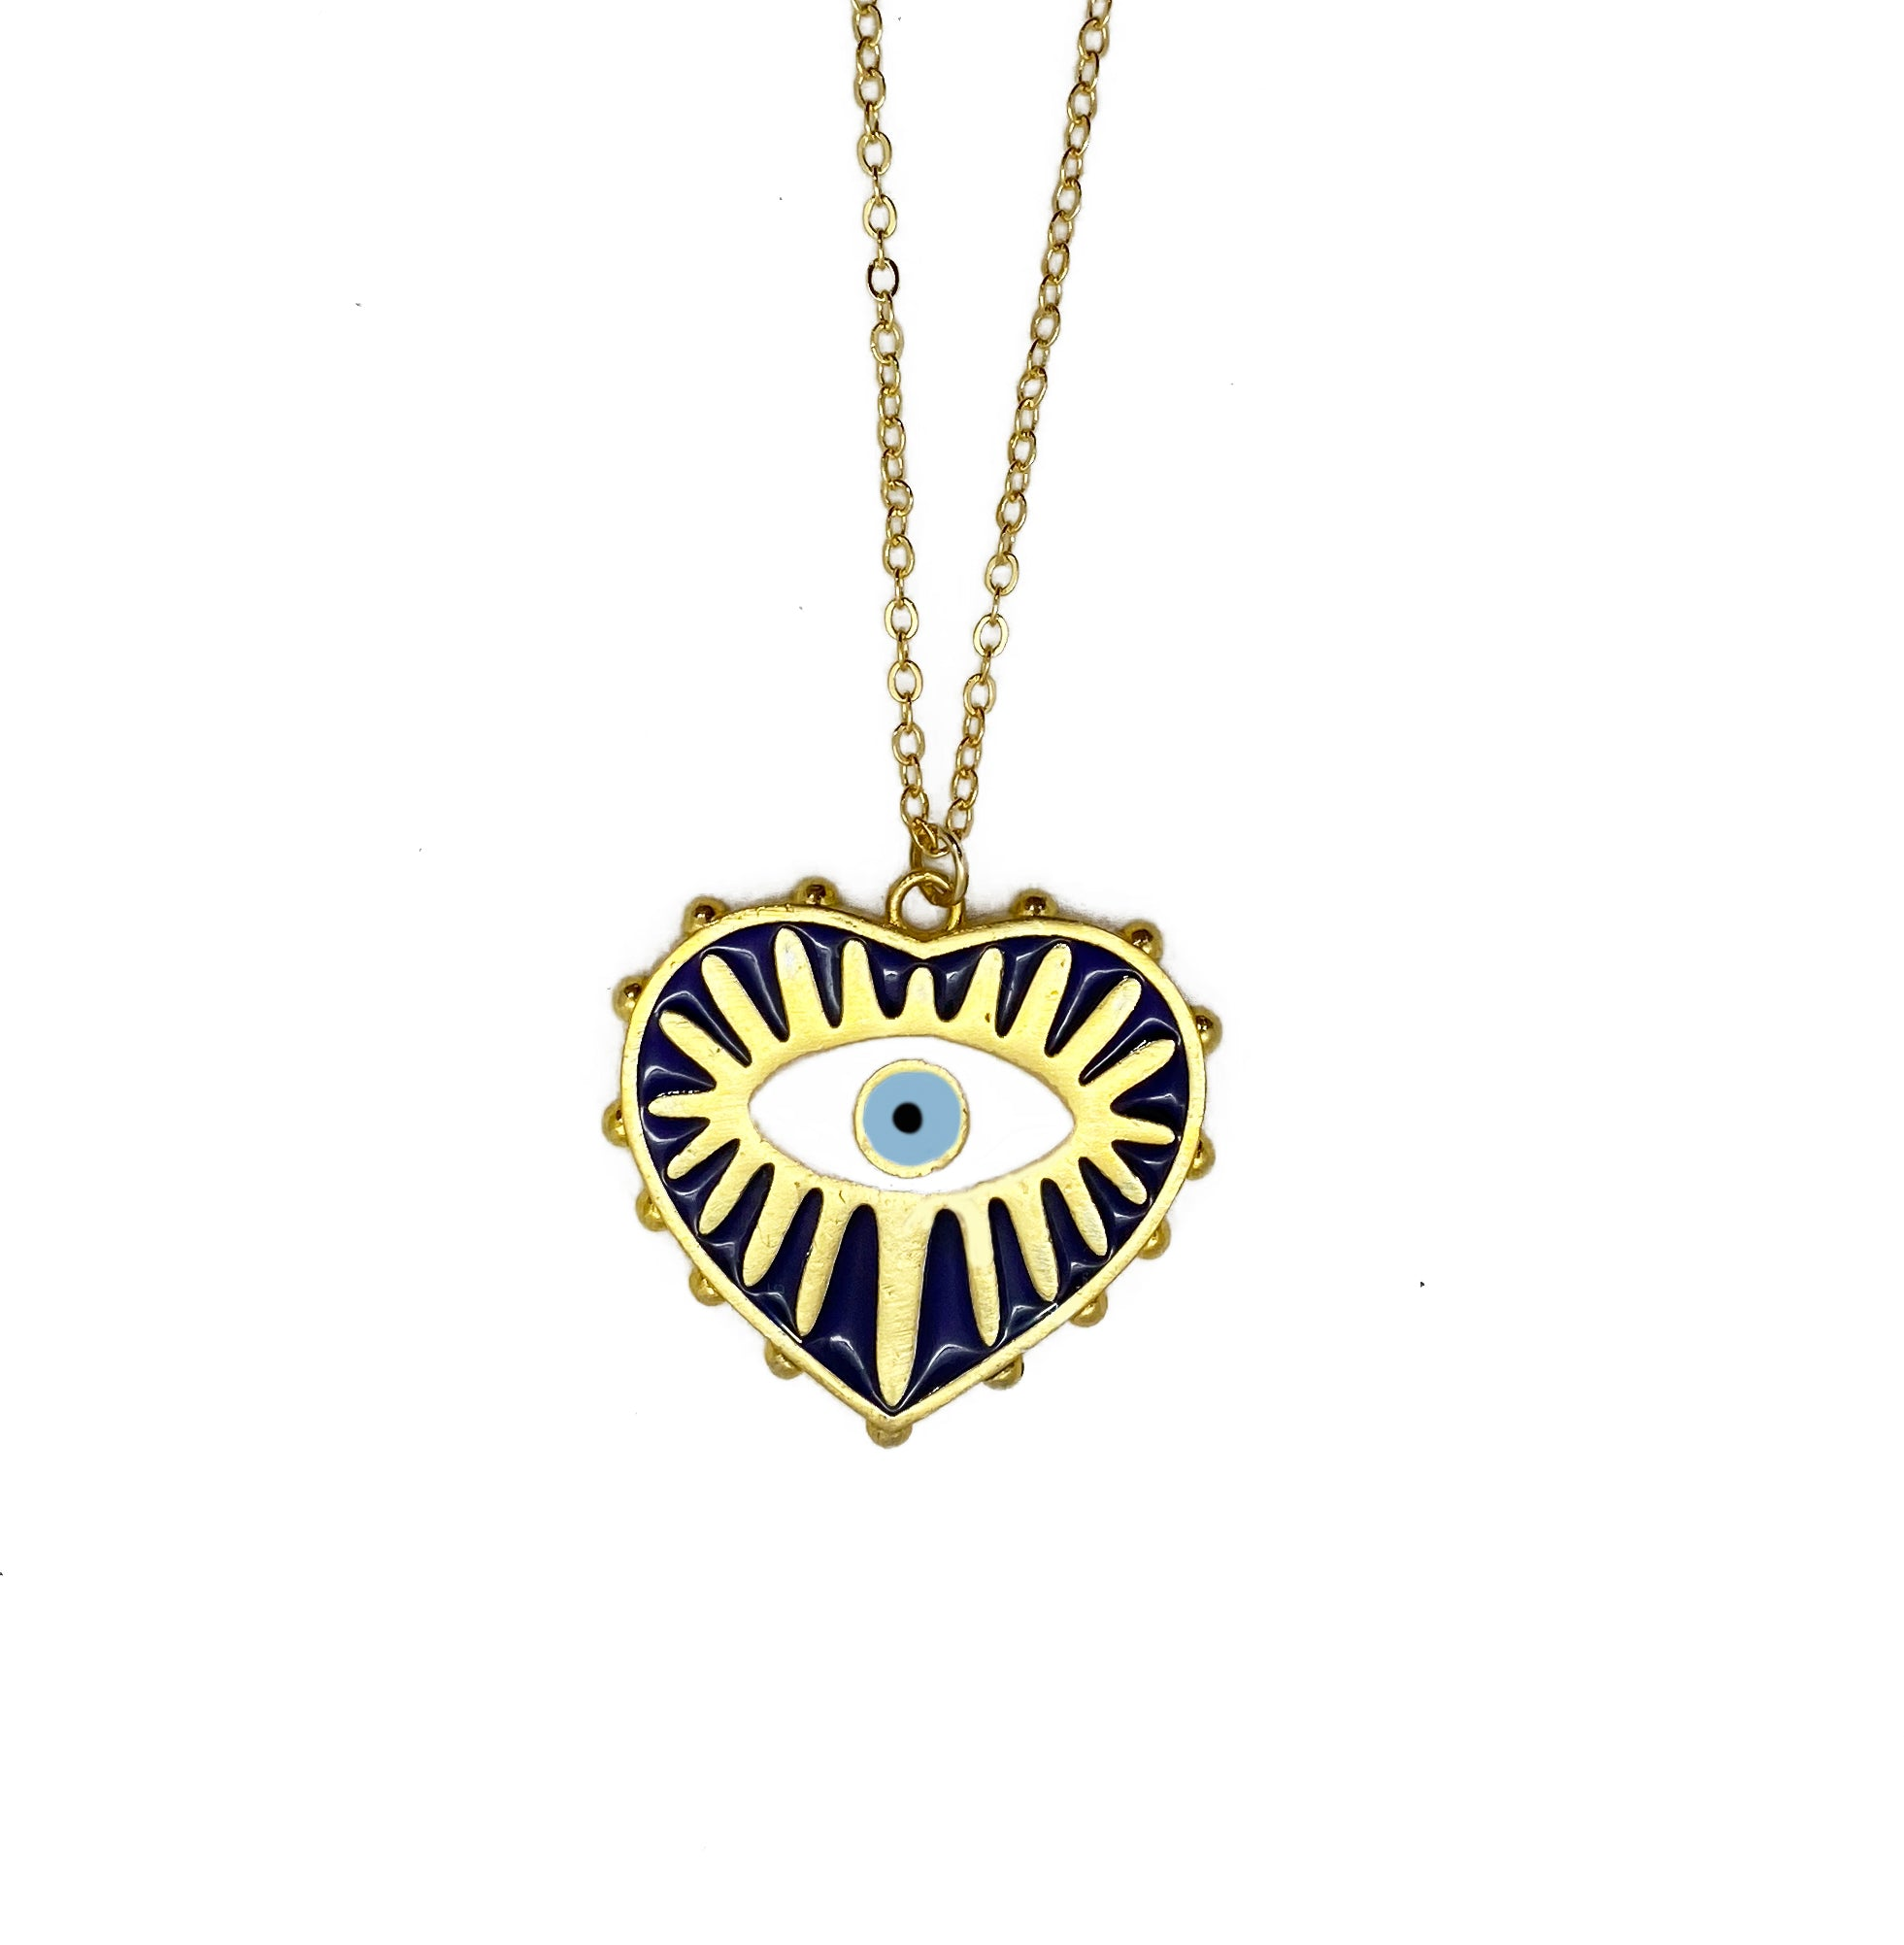 NAVY EVIL EYE NECKLACE